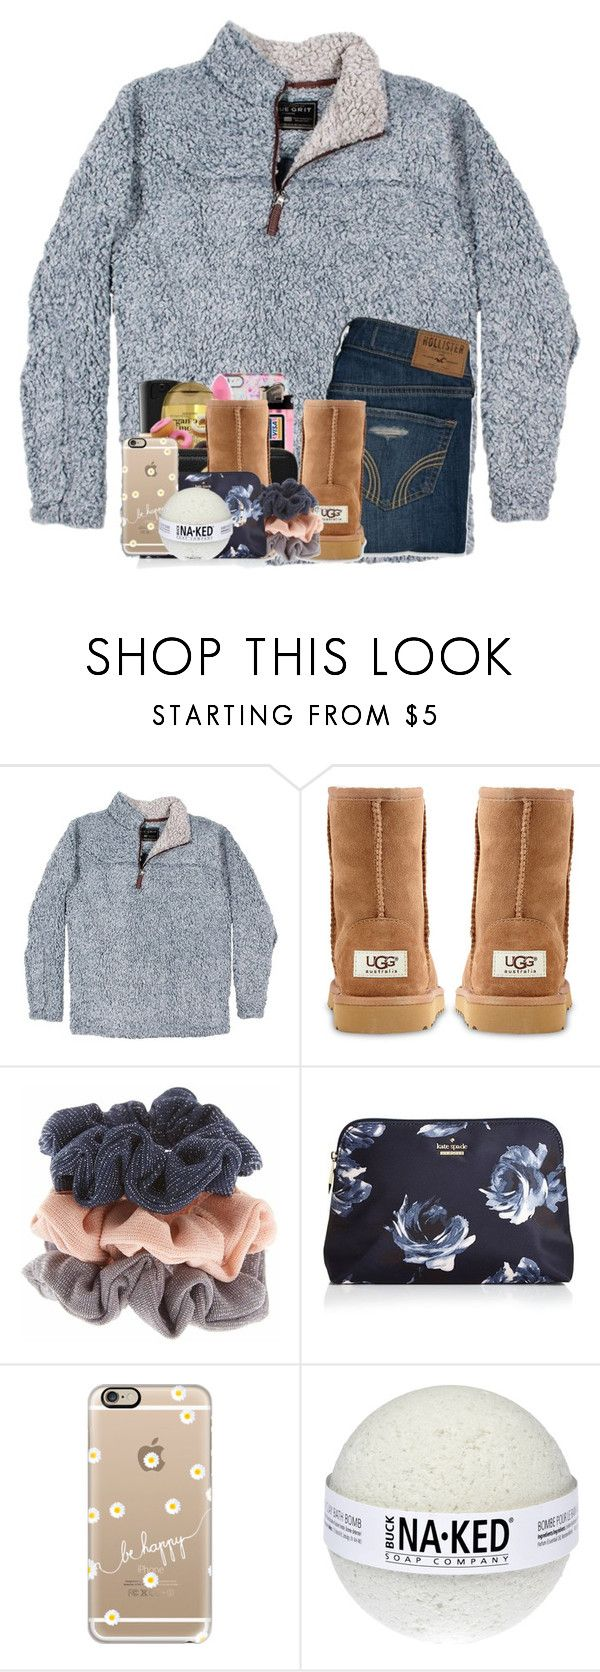 """Face reveal in items!"" by cassieq6929 ❤ liked on Polyvore featuring True Grit, Hollister Co., UGG Australia, Kate Spade and Casetify"